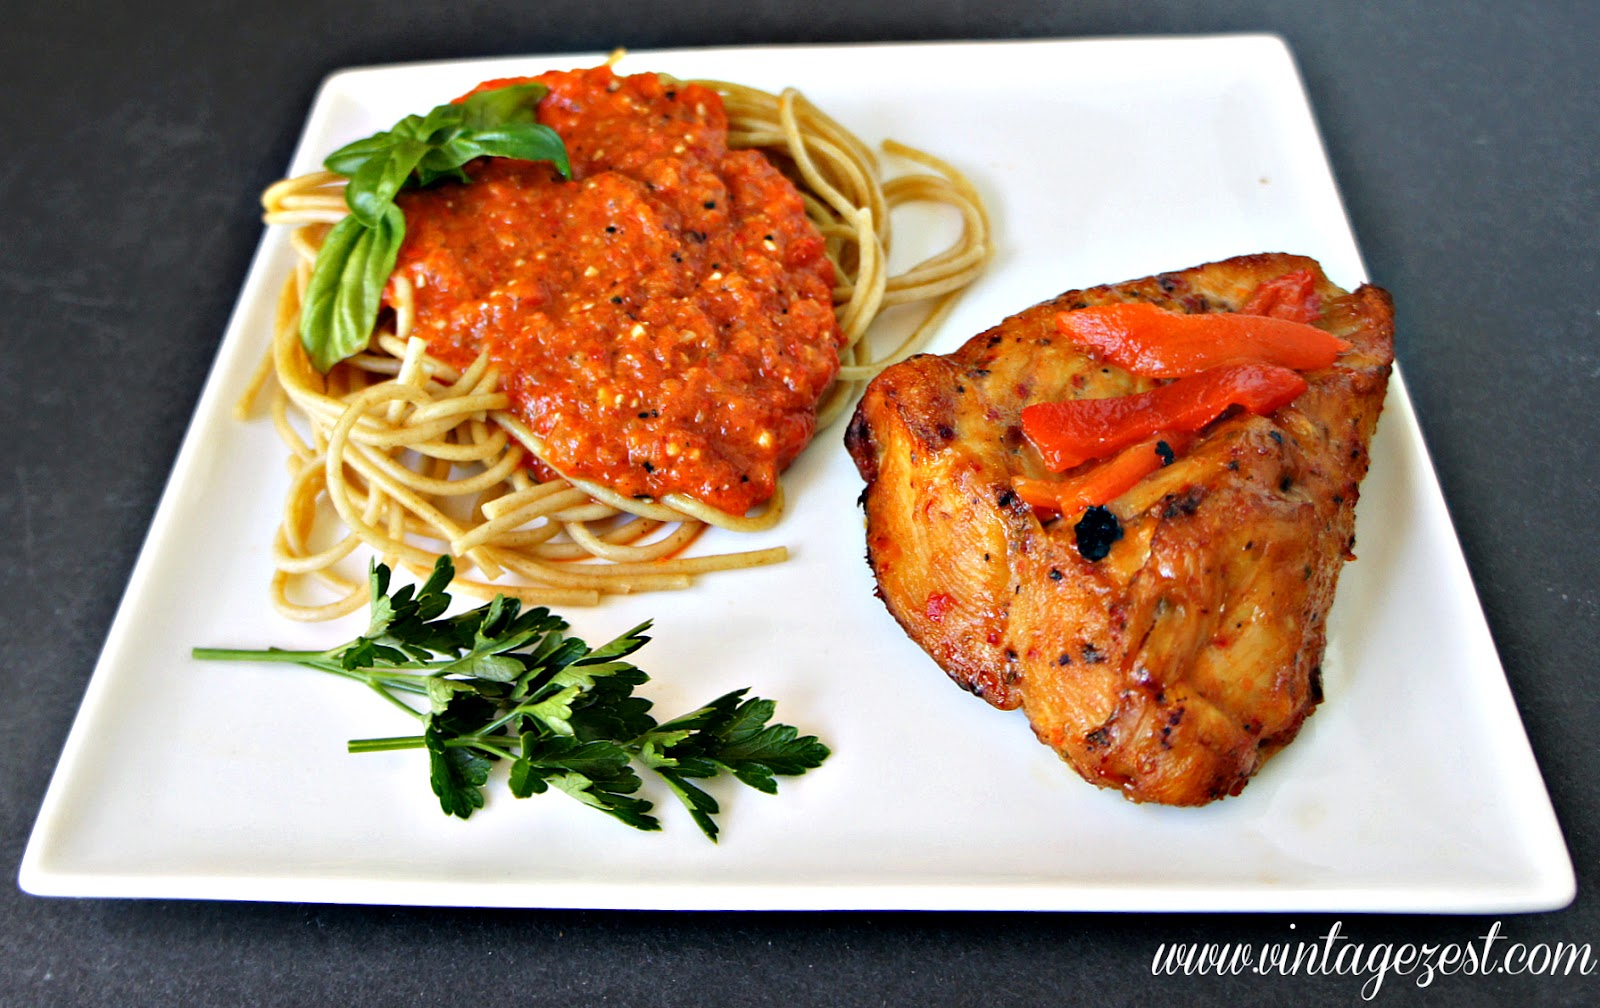 Roasted Red Pepper & Garlic Chicken with Roasted Red Pepper Spaghetti - Quick & Easy to Make! #inspiremydinner #shop #cbias